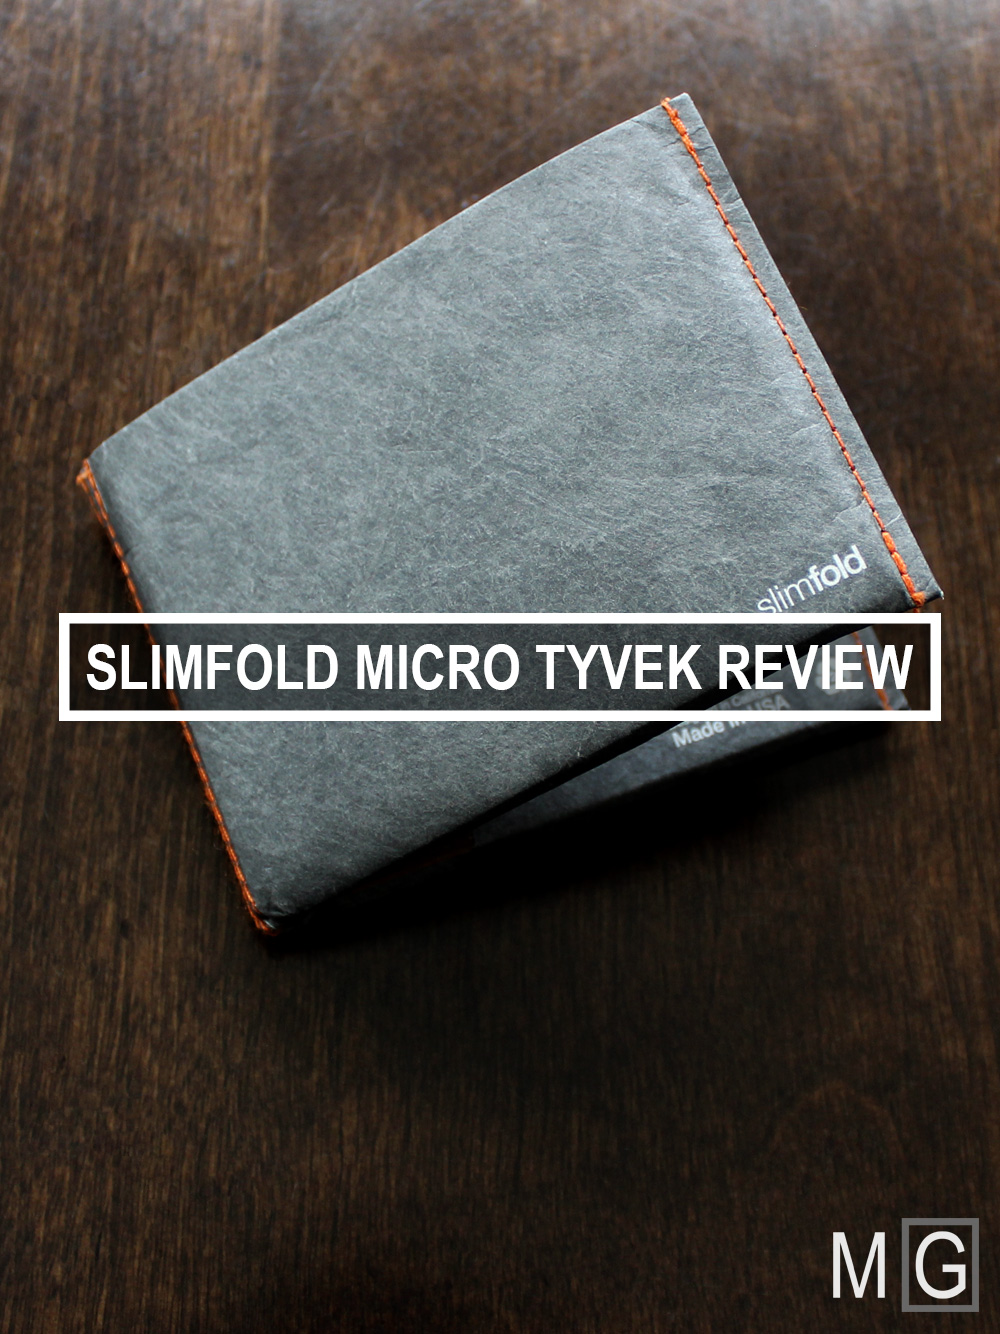 slimfold-micro-review-tyvek-wallet.jpg